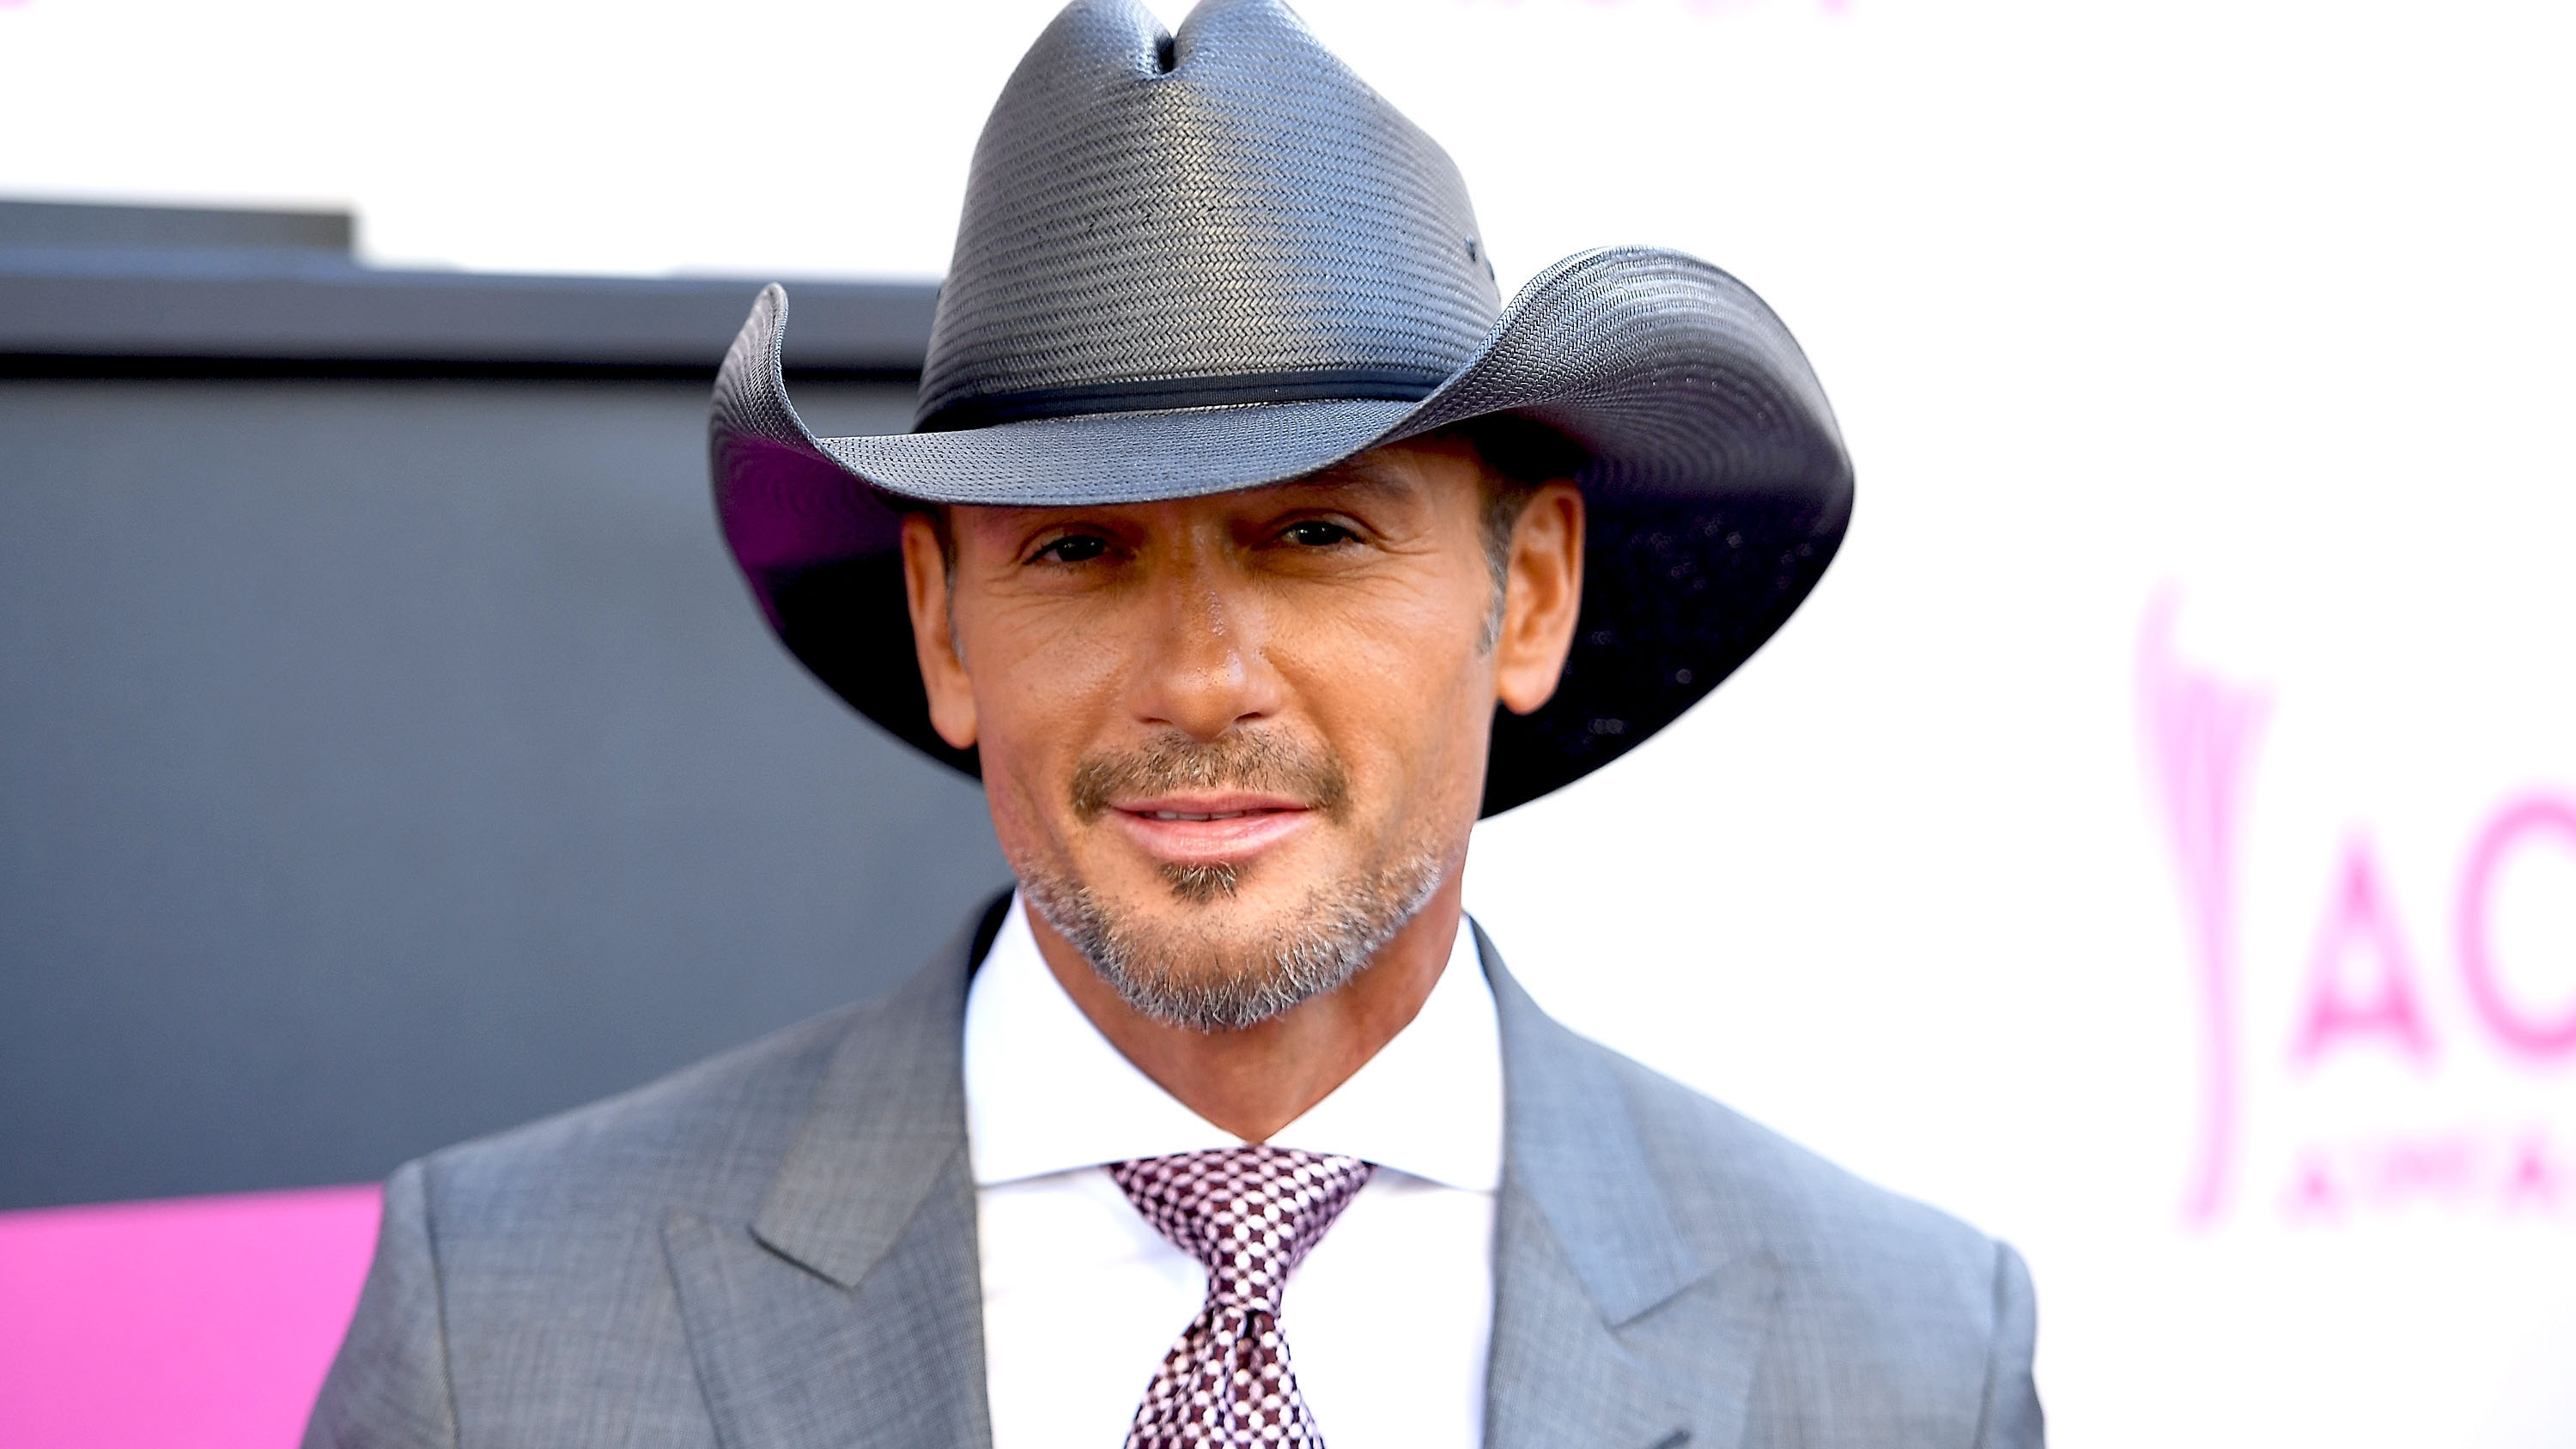 Tim mcgraw shares cryptic tweet after deleting all instagram photos jpg  1200x630 Tim mcgraw with his 9b28a1de856e